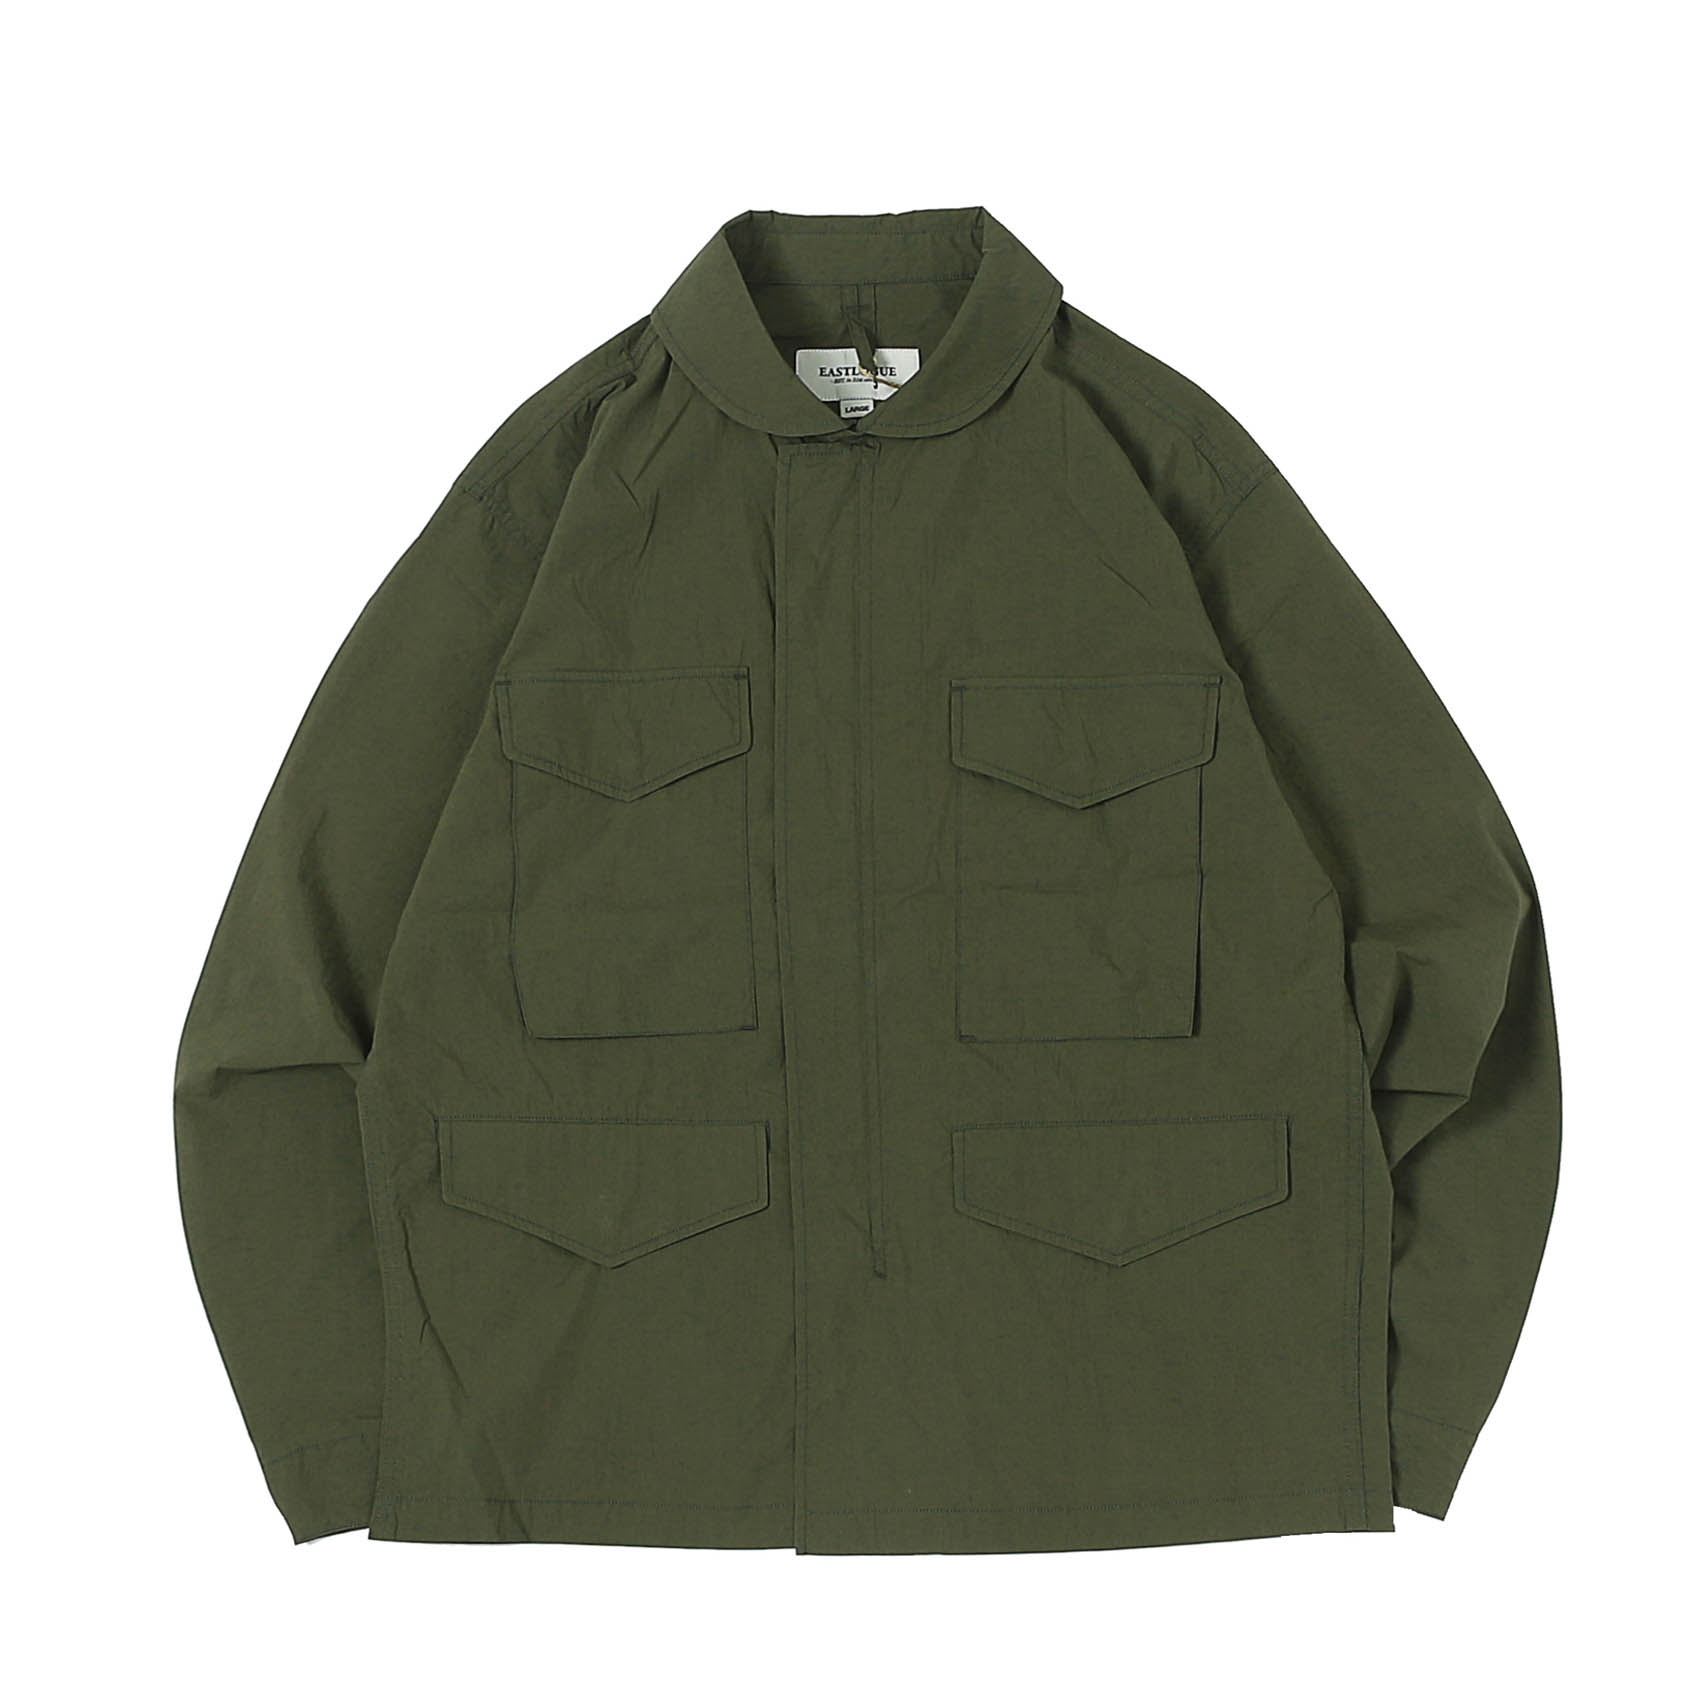 M21 JACKET - OLIVE WASHER